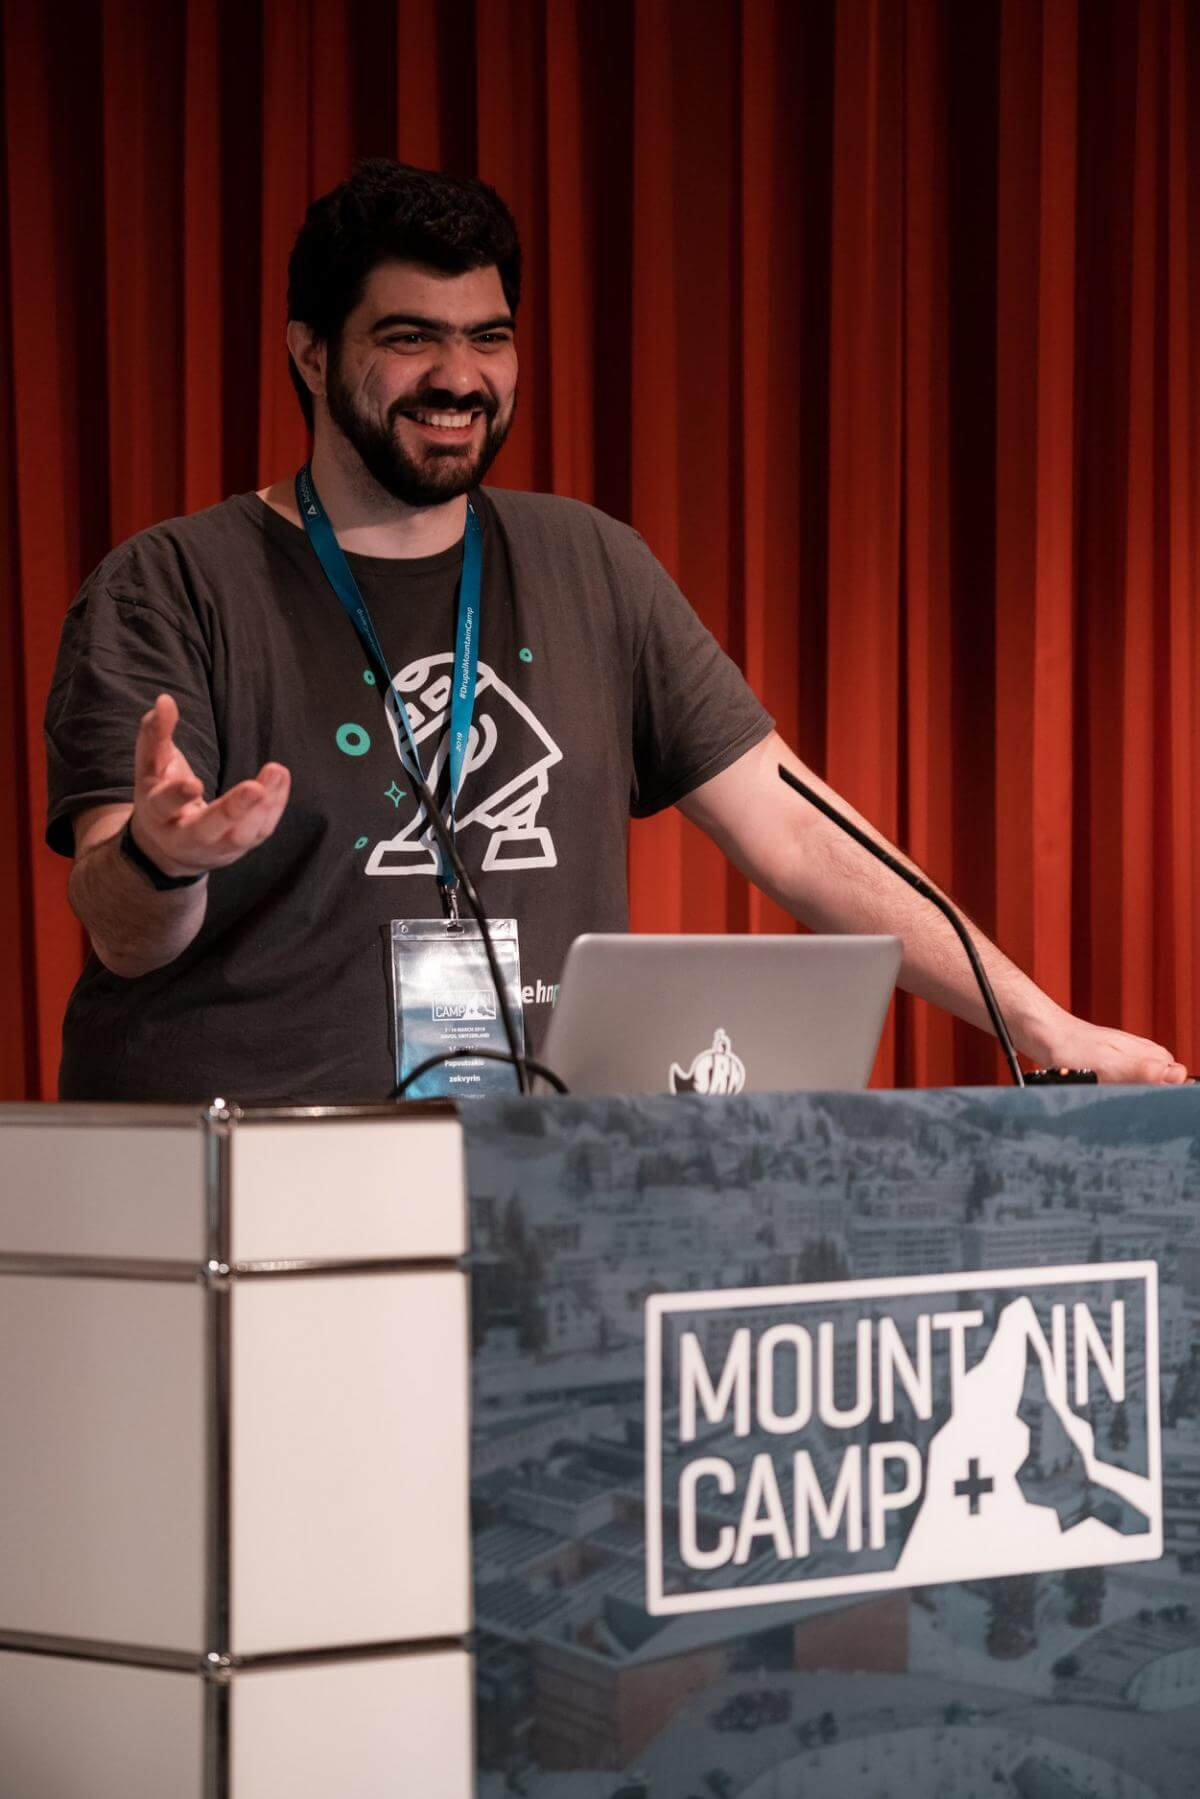 Vasilis at drupal camp